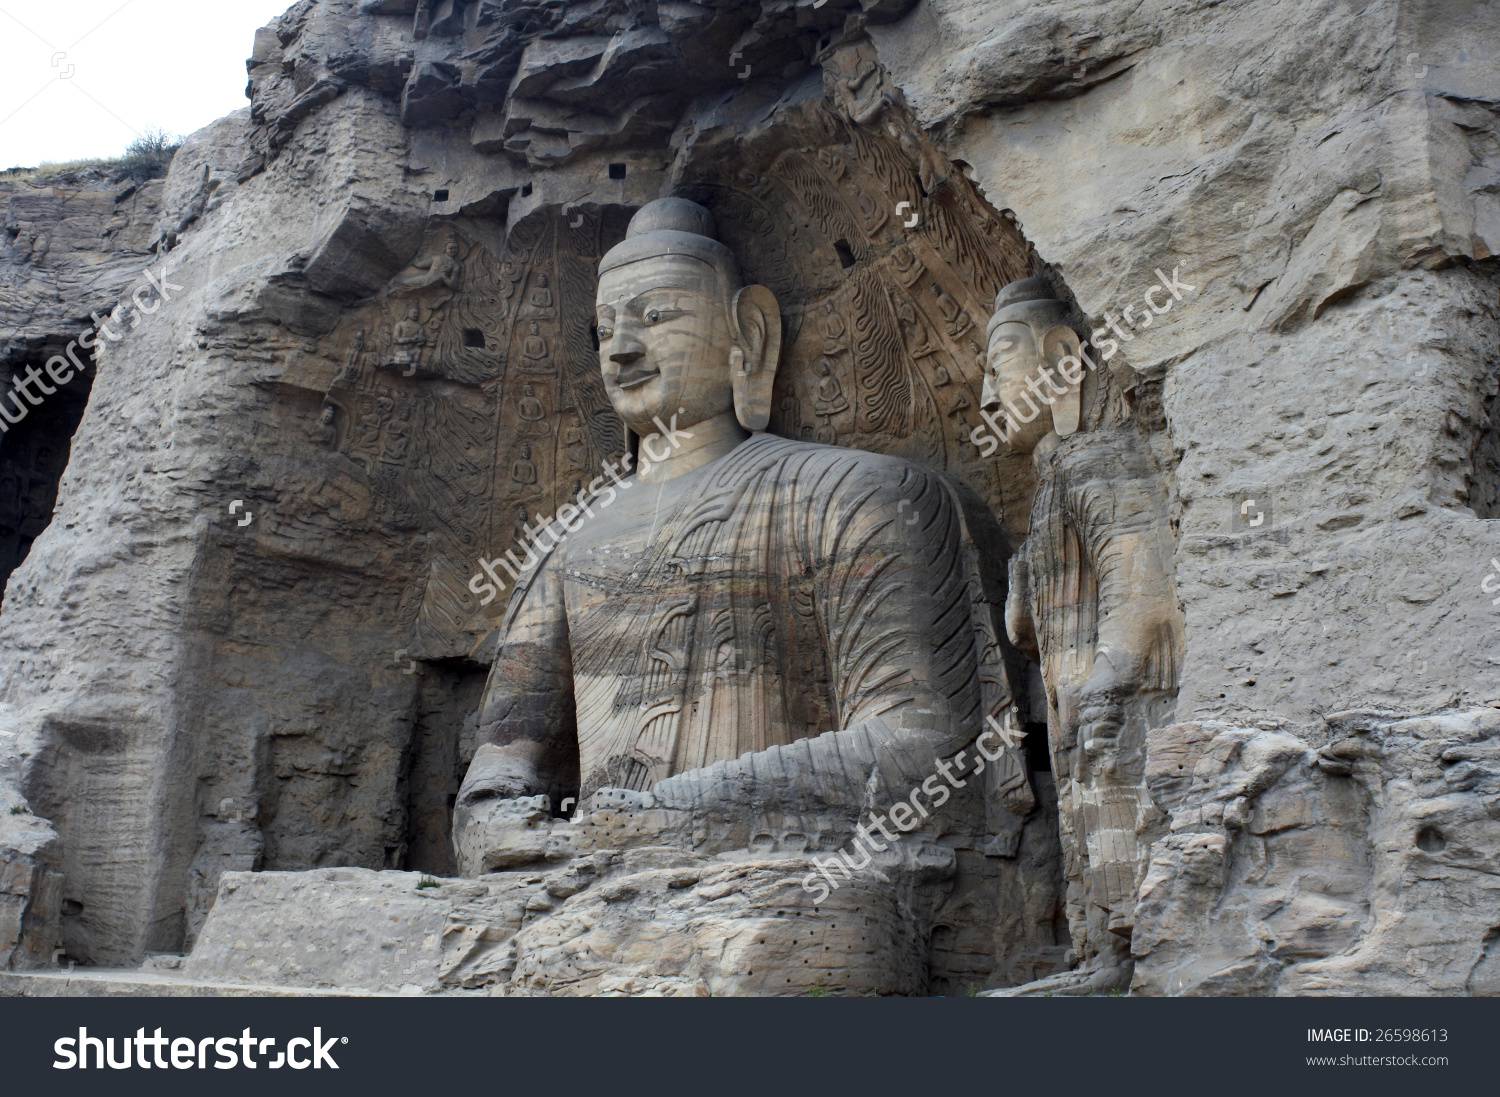 China/Shanxi:Stone Carving Of Yungang Grottoes, The Biggest Buddha.